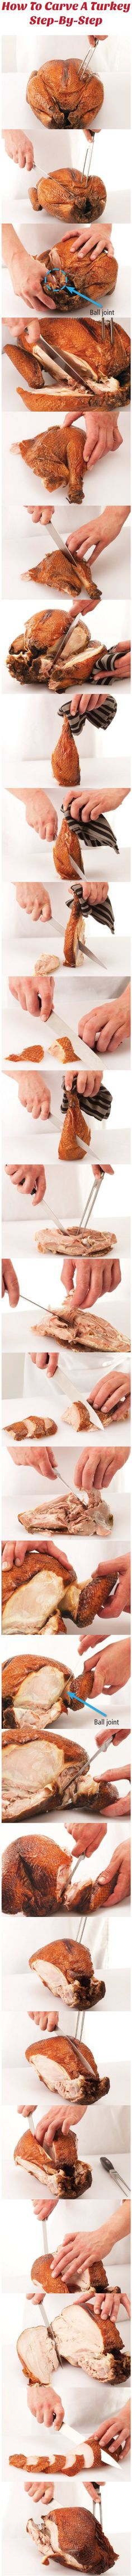 How To Carve A Turkey, Step-By-Step